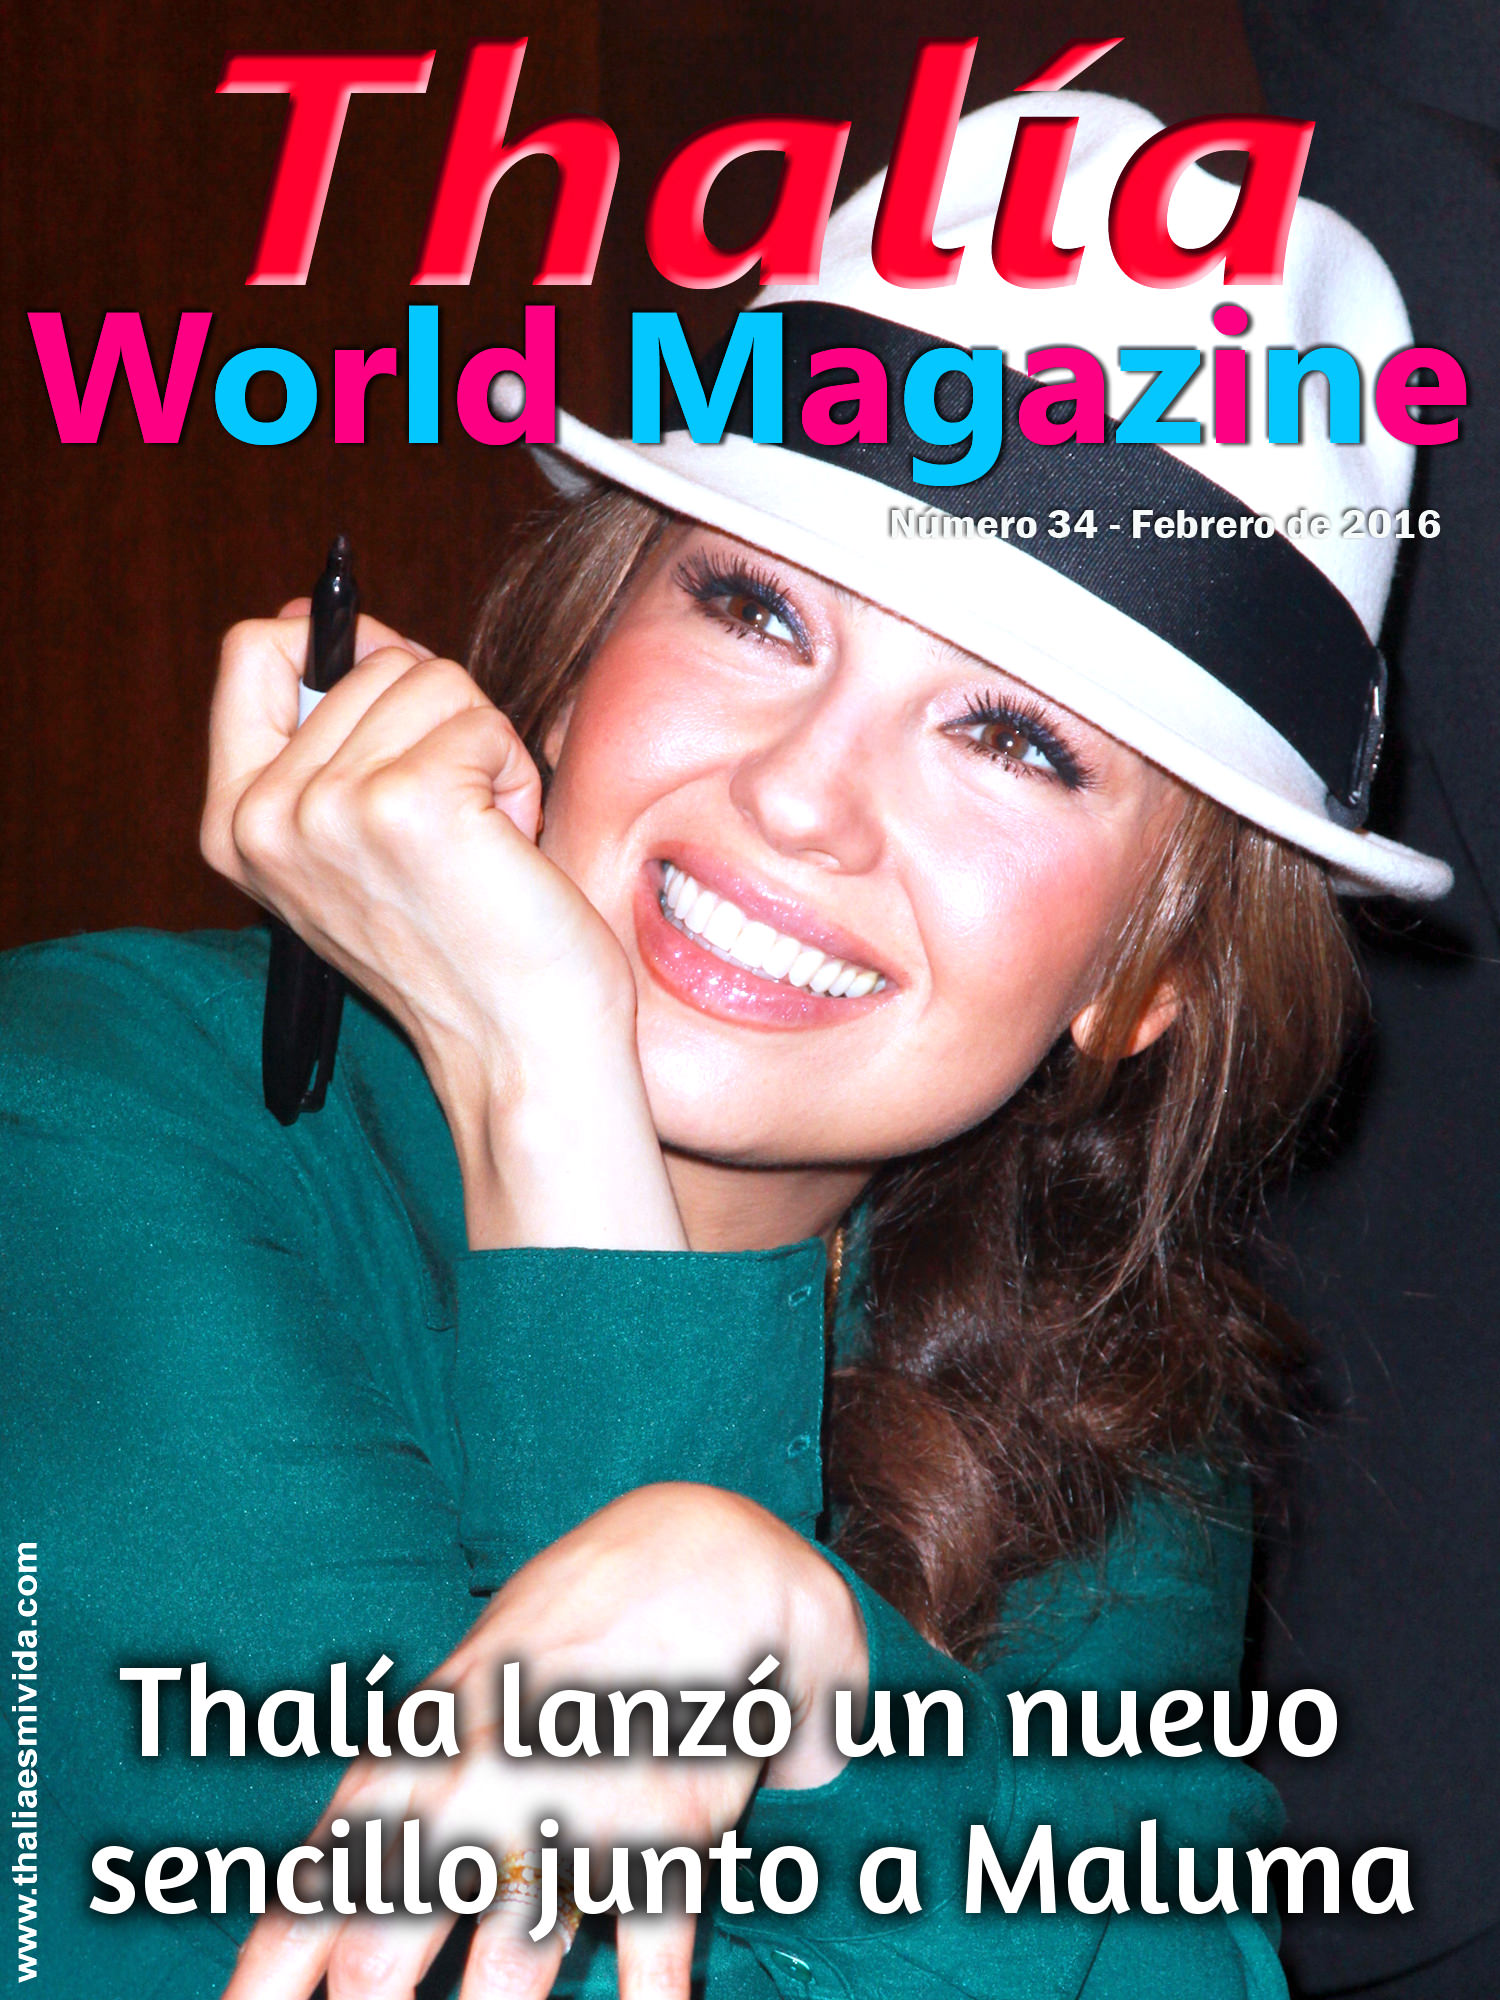 Thalia World Magazine 34